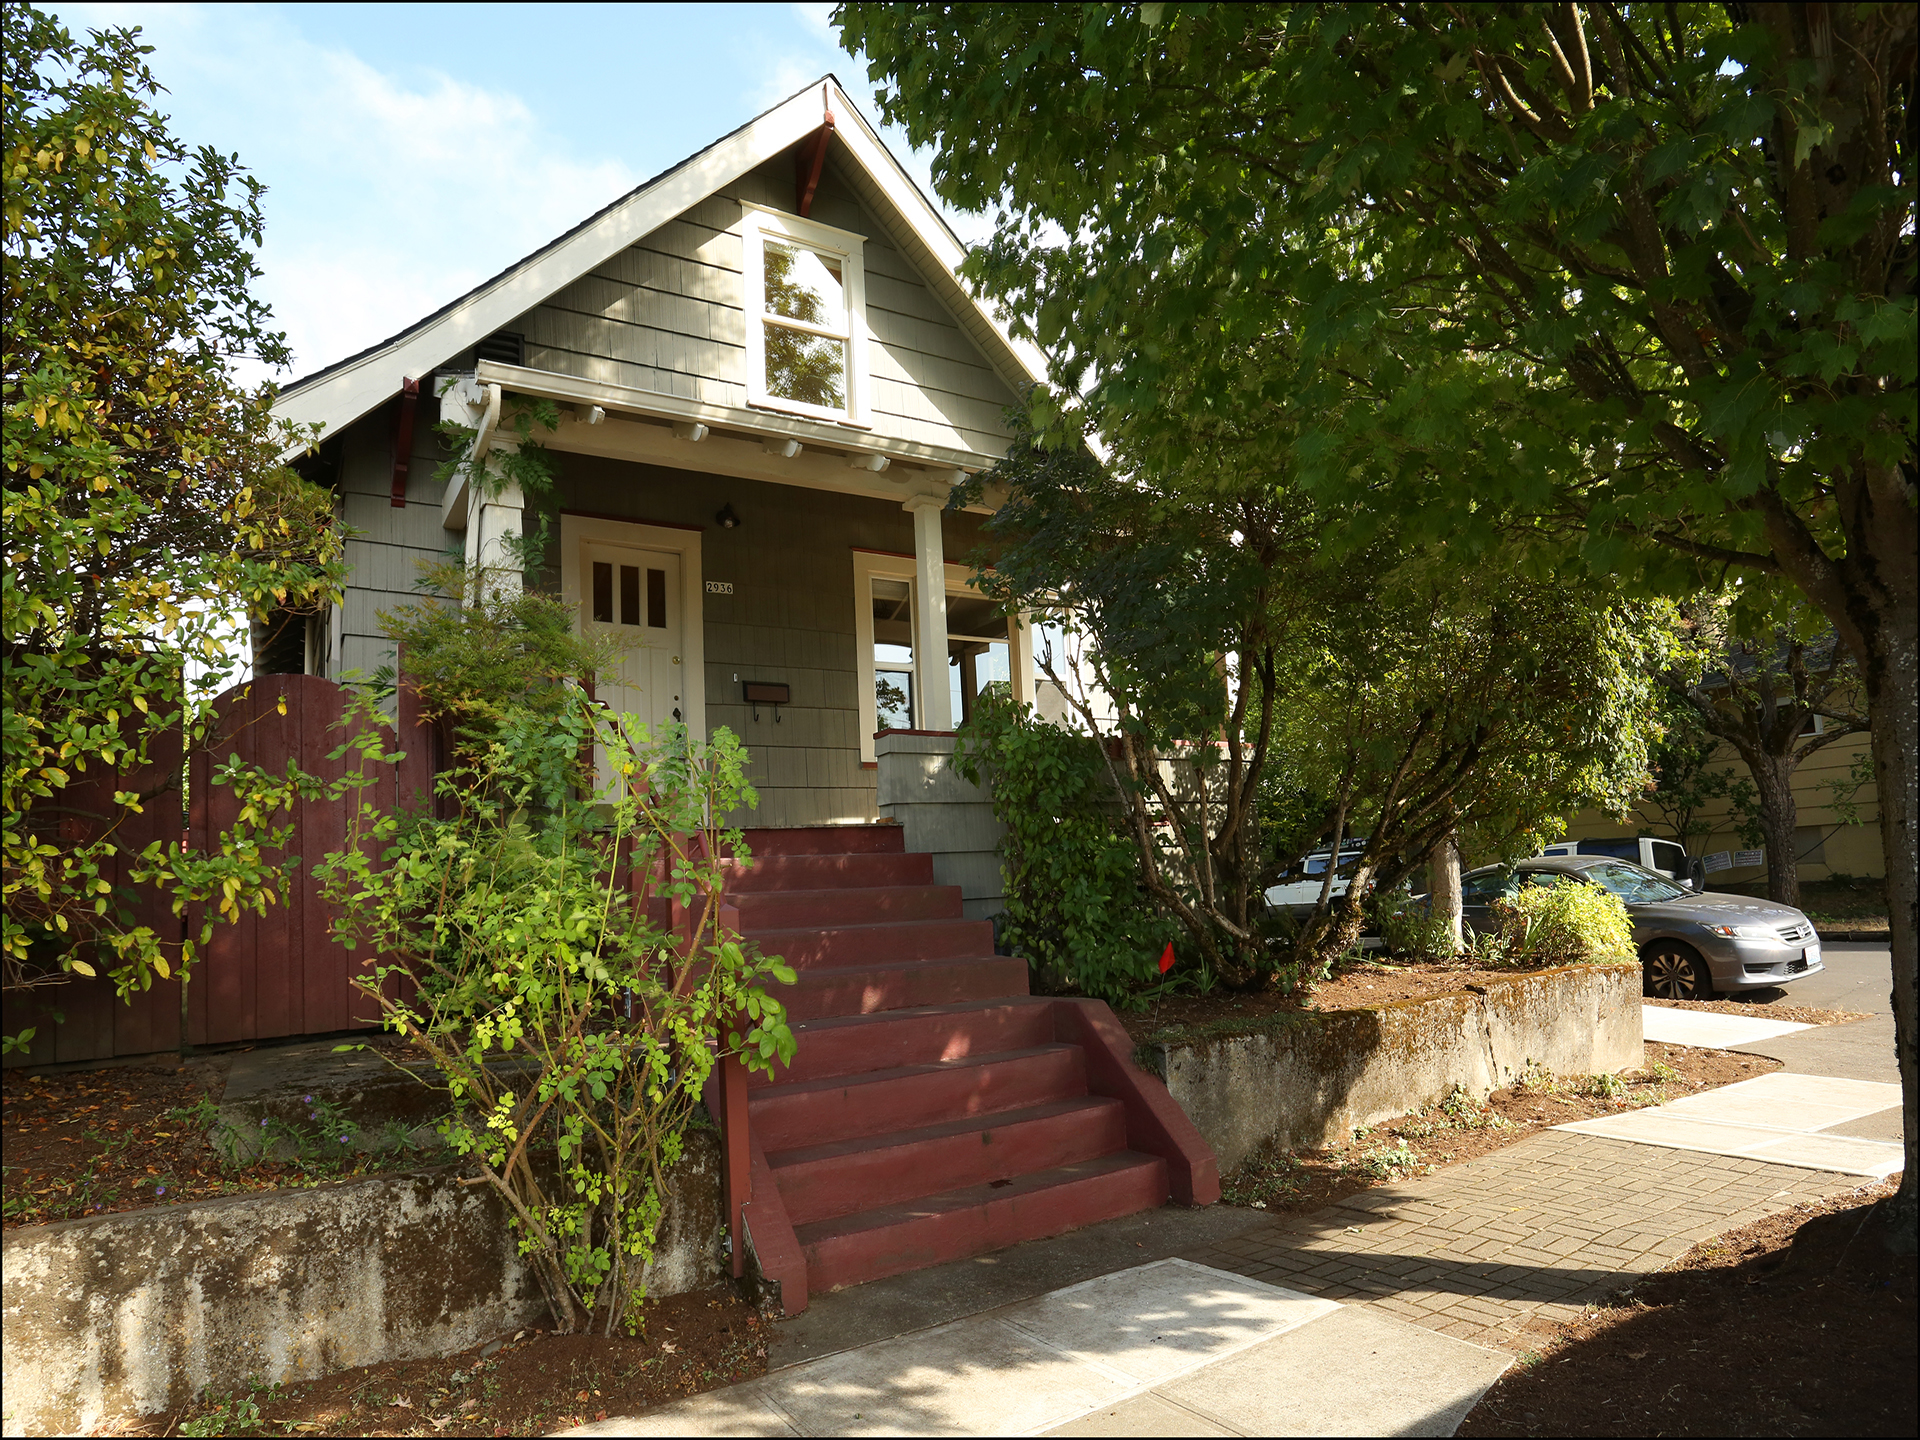 2936 SE 18th Ave -  Stylish Bungalow with huge upside potential  $635,000